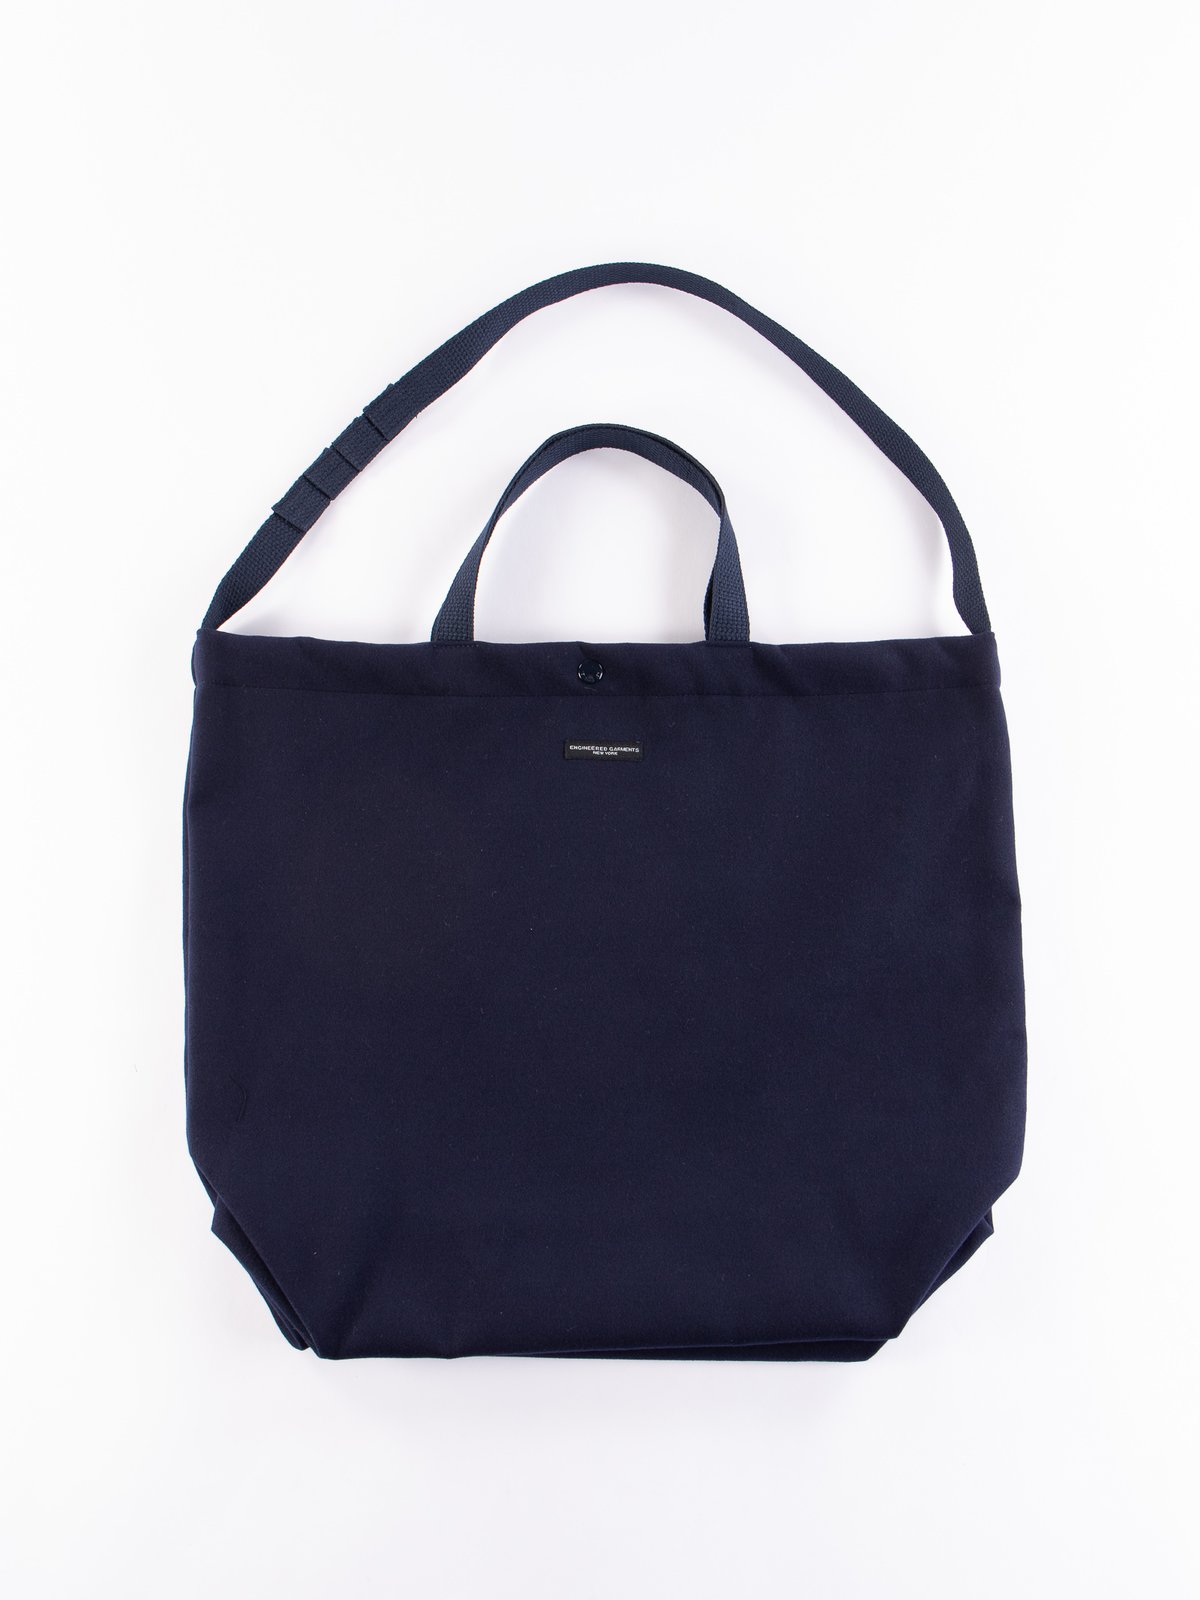 Navy Polyester Fake Melton Carry All Tote - Image 1